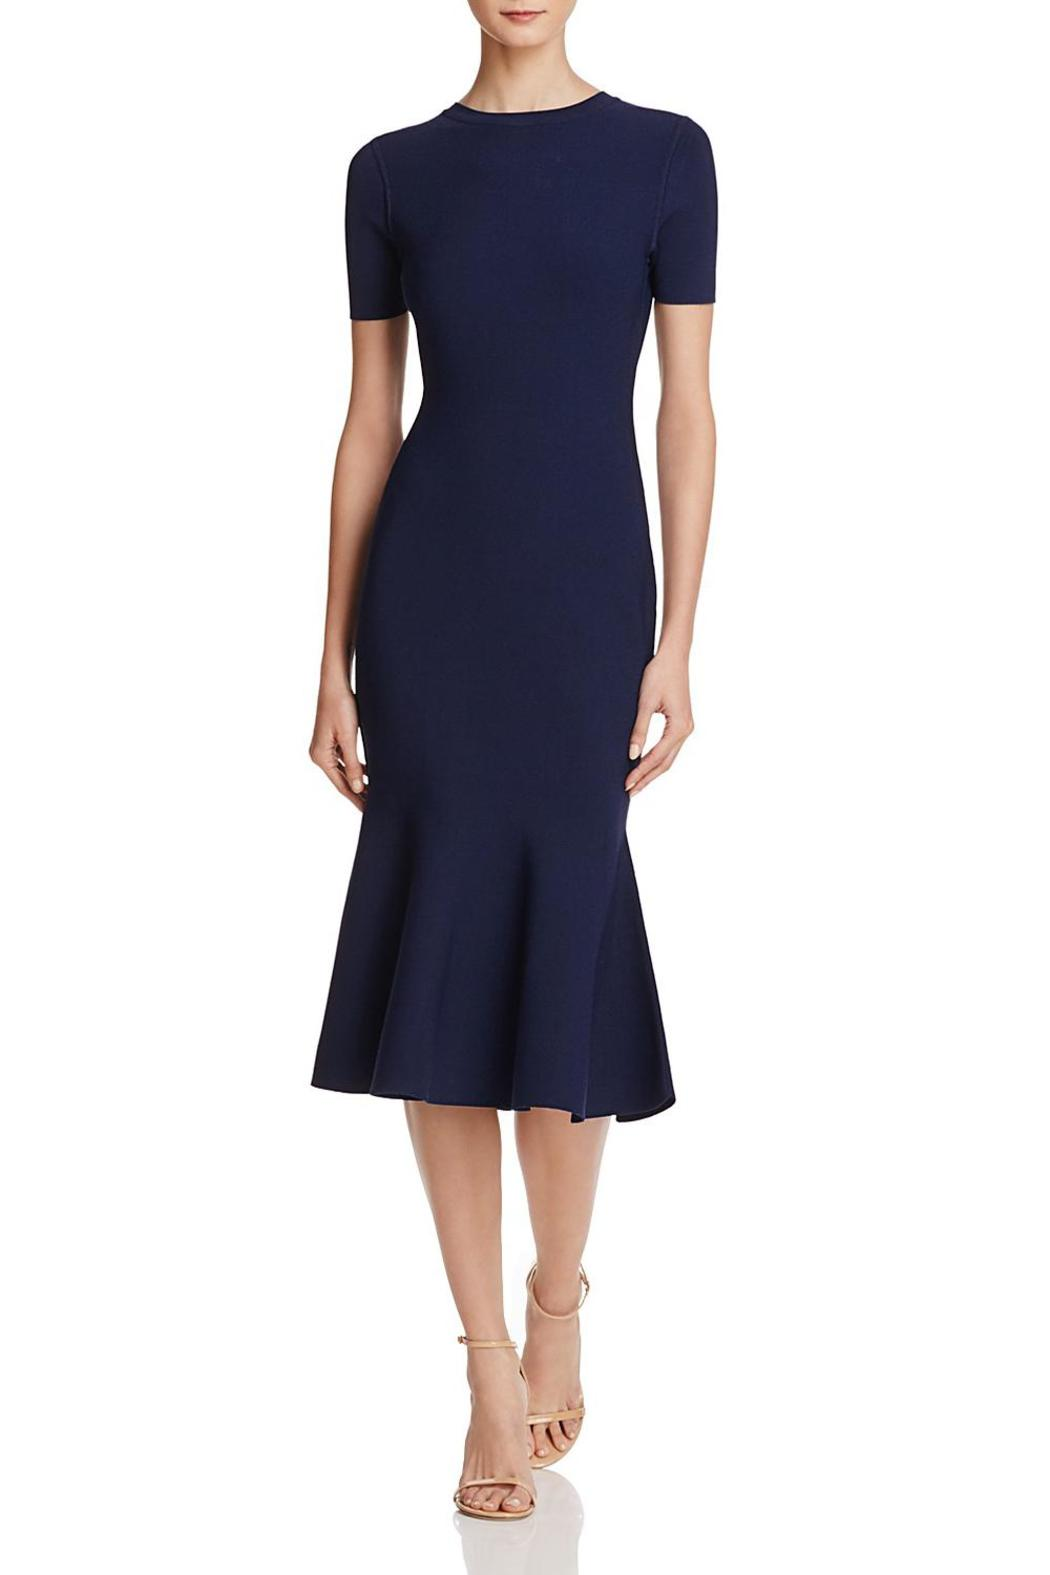 bd1b0f20a945 Milly Mermaid Hem Dress from Dallas by Pax & Parker — Shoptiques